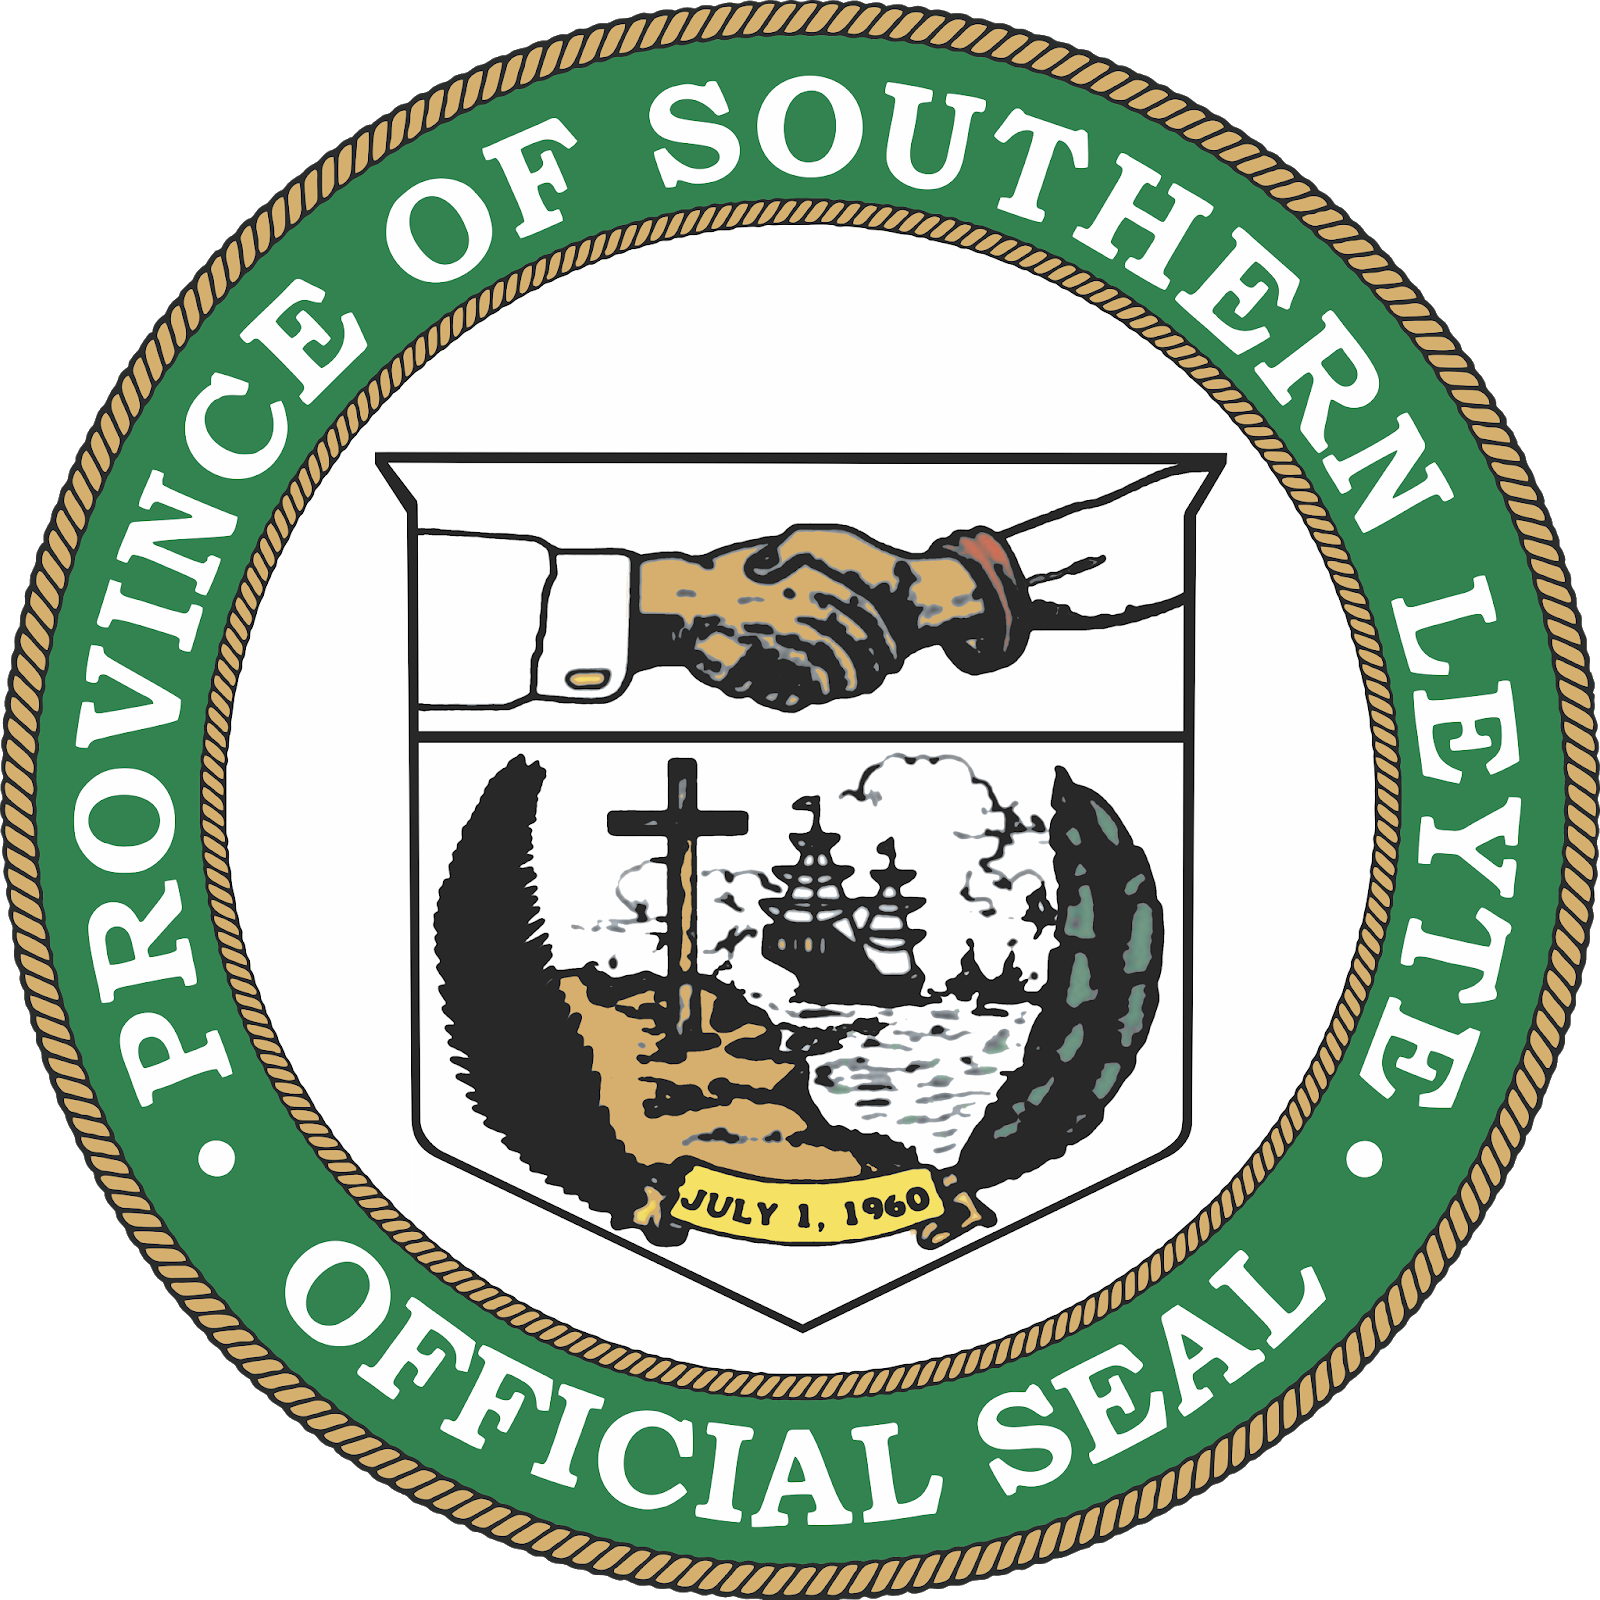 LOGO NATION PHILIPPINES: Province of Southern Leyte Official Seal